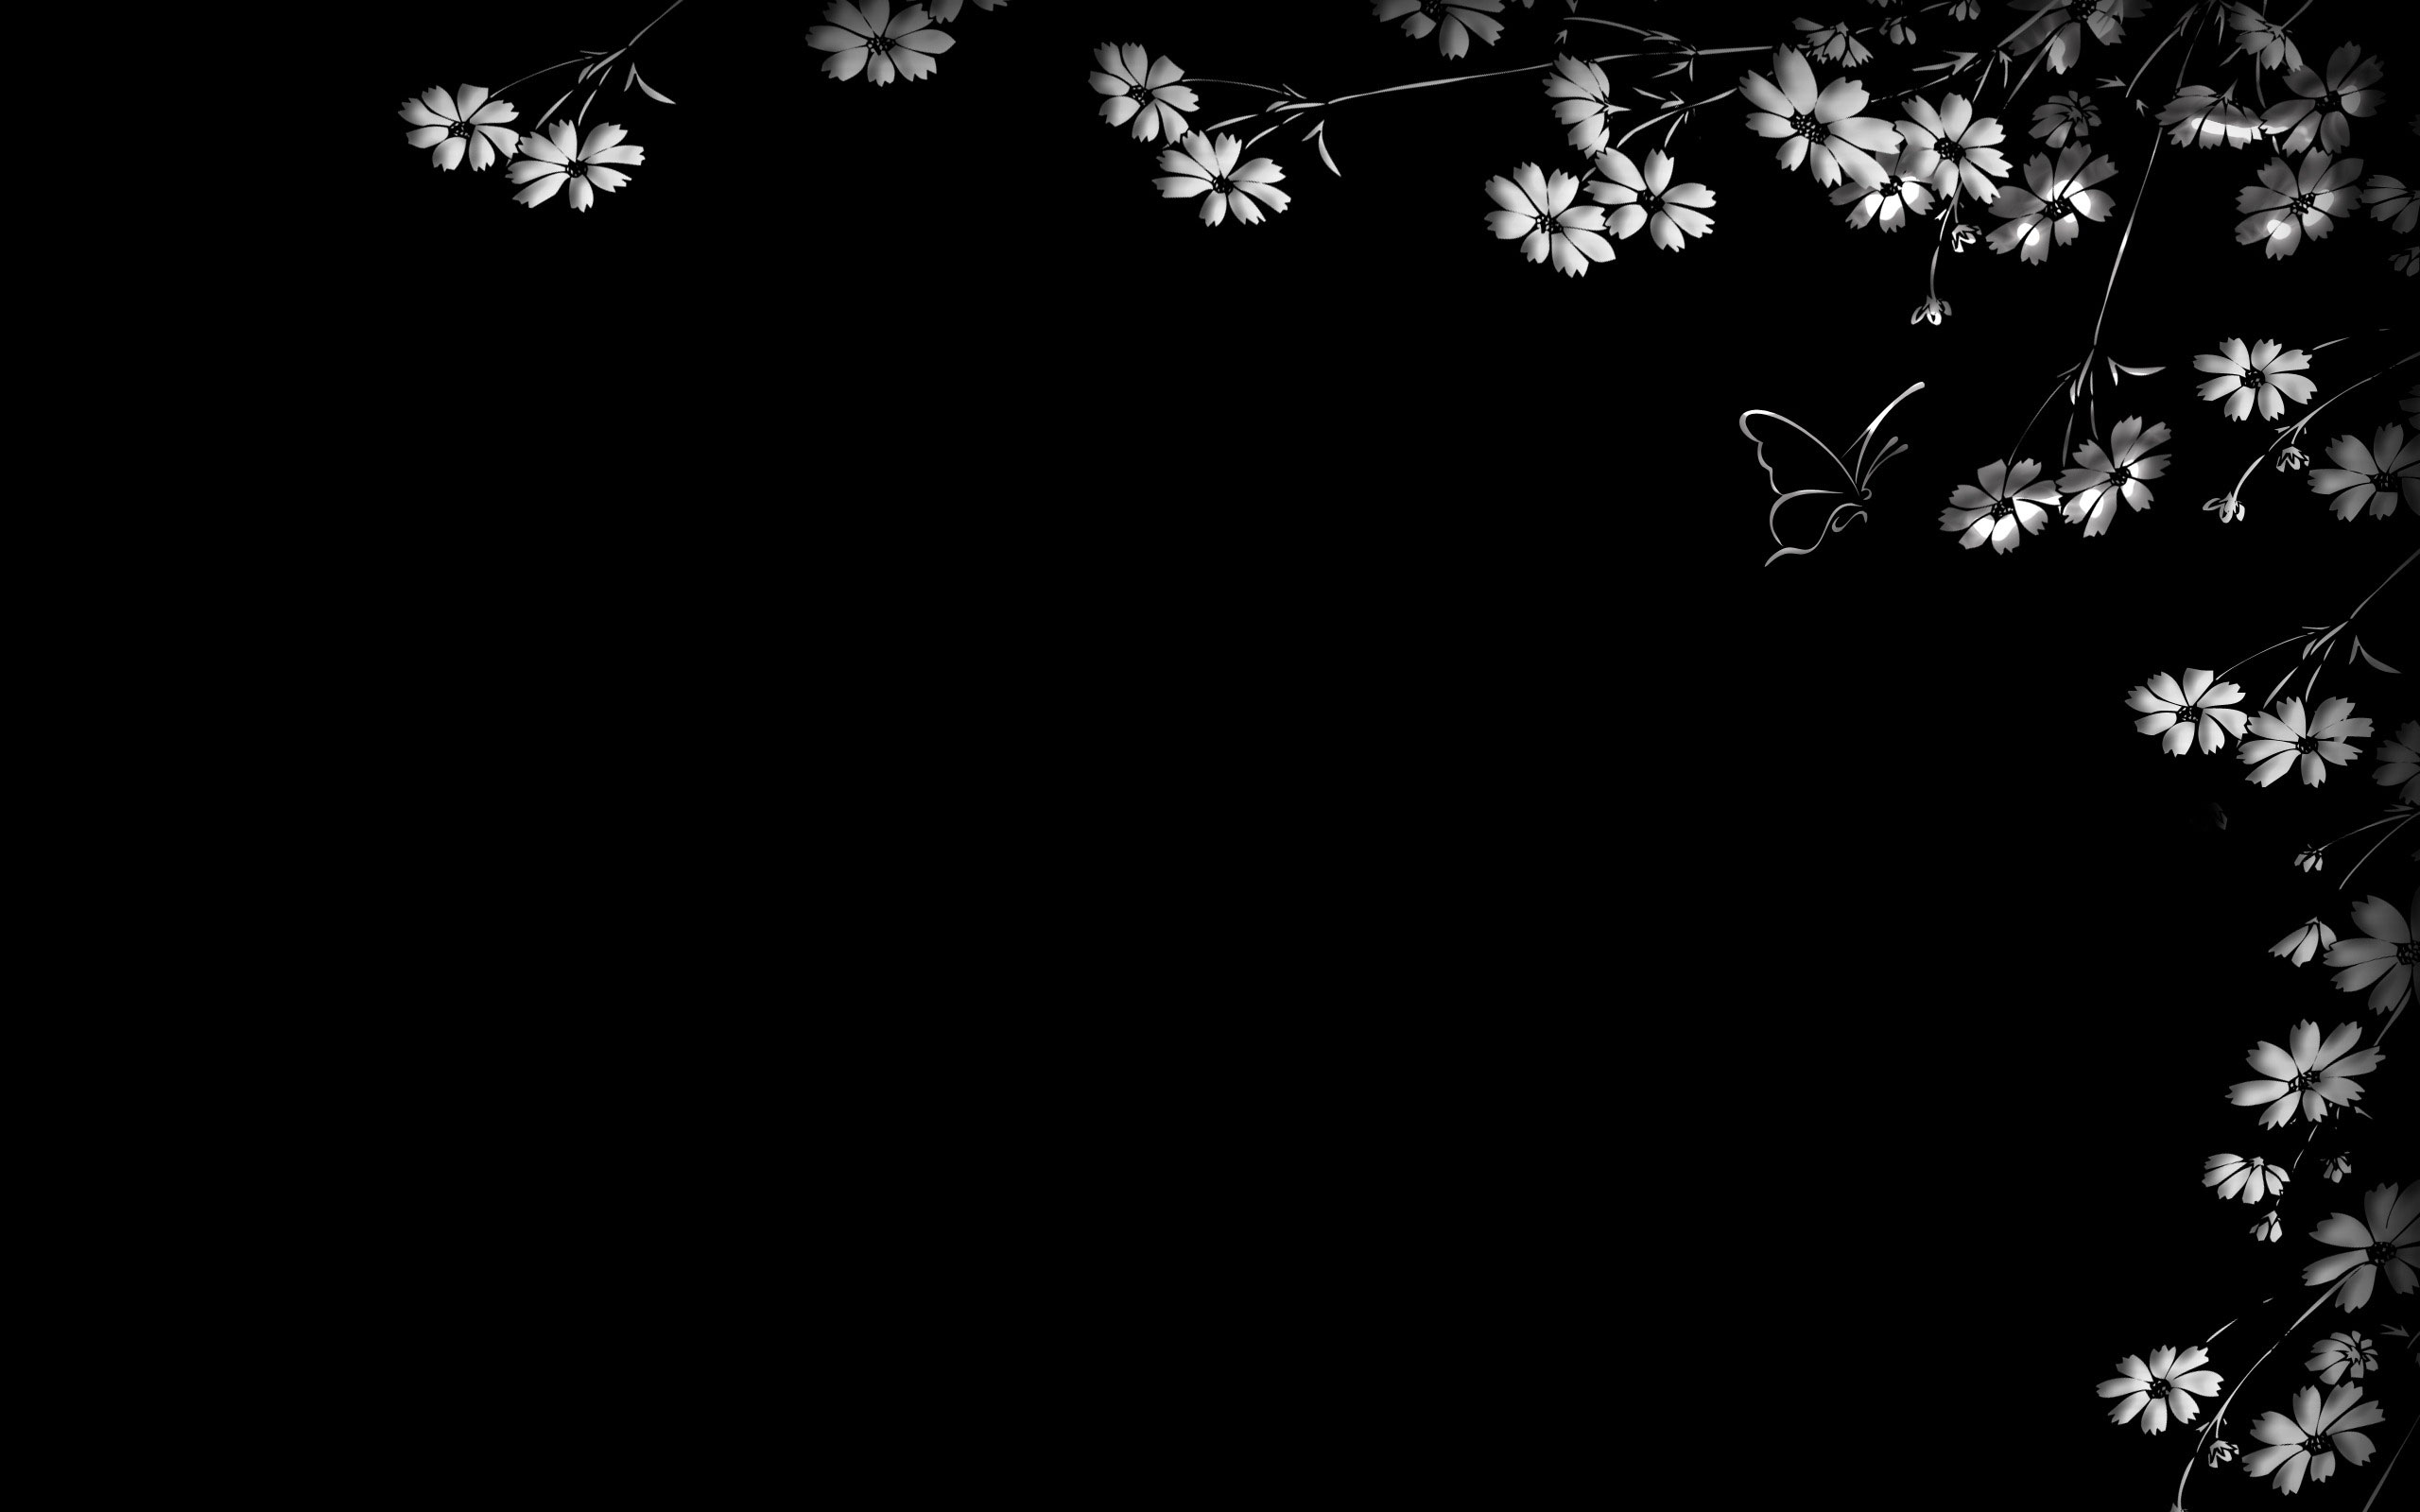 Hd black and white flower wallpaper